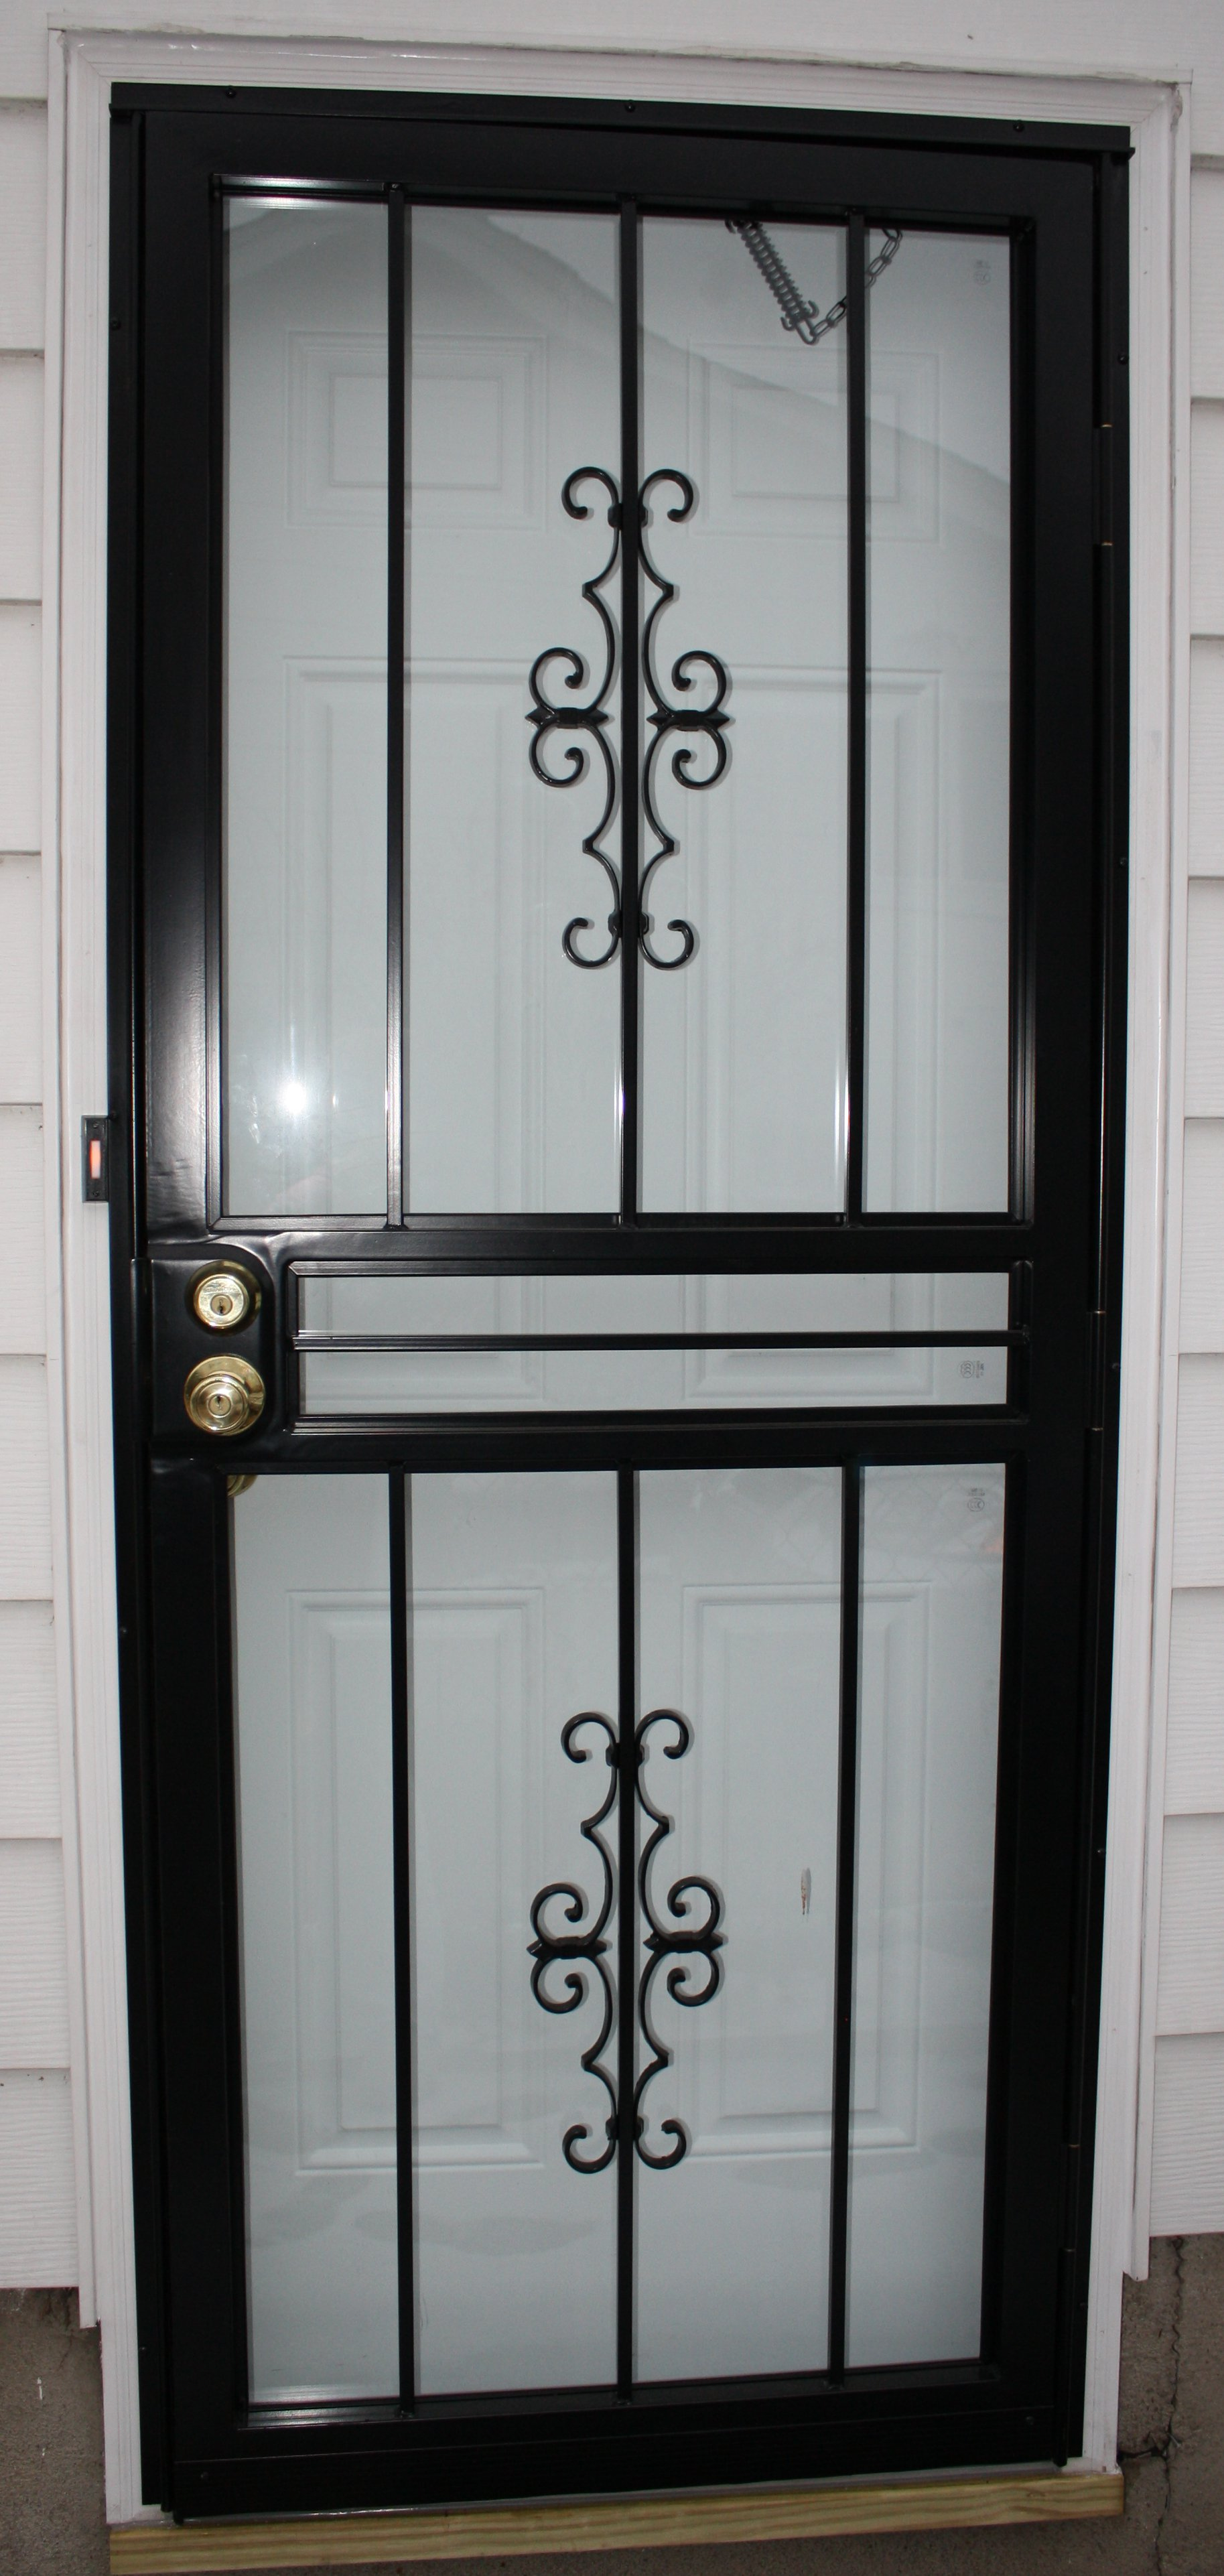 frame wrought tru depot door folding of screen patio doors home gates sliding full size iron for security storm